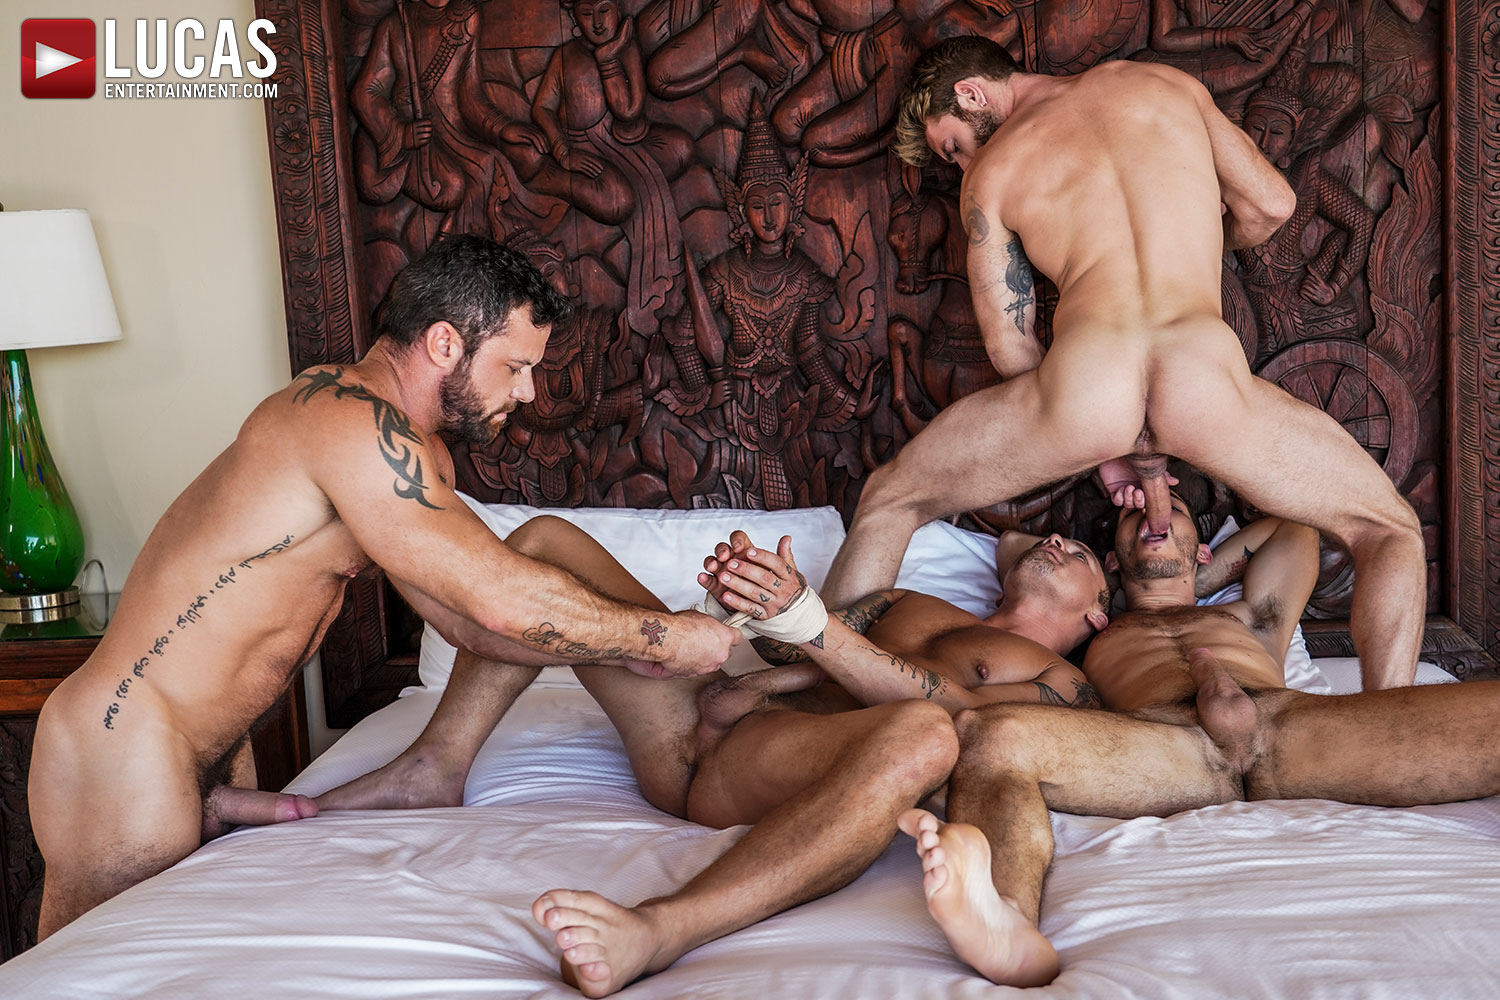 Buy 'Punishing Some Hole' On DVD Or Download Now